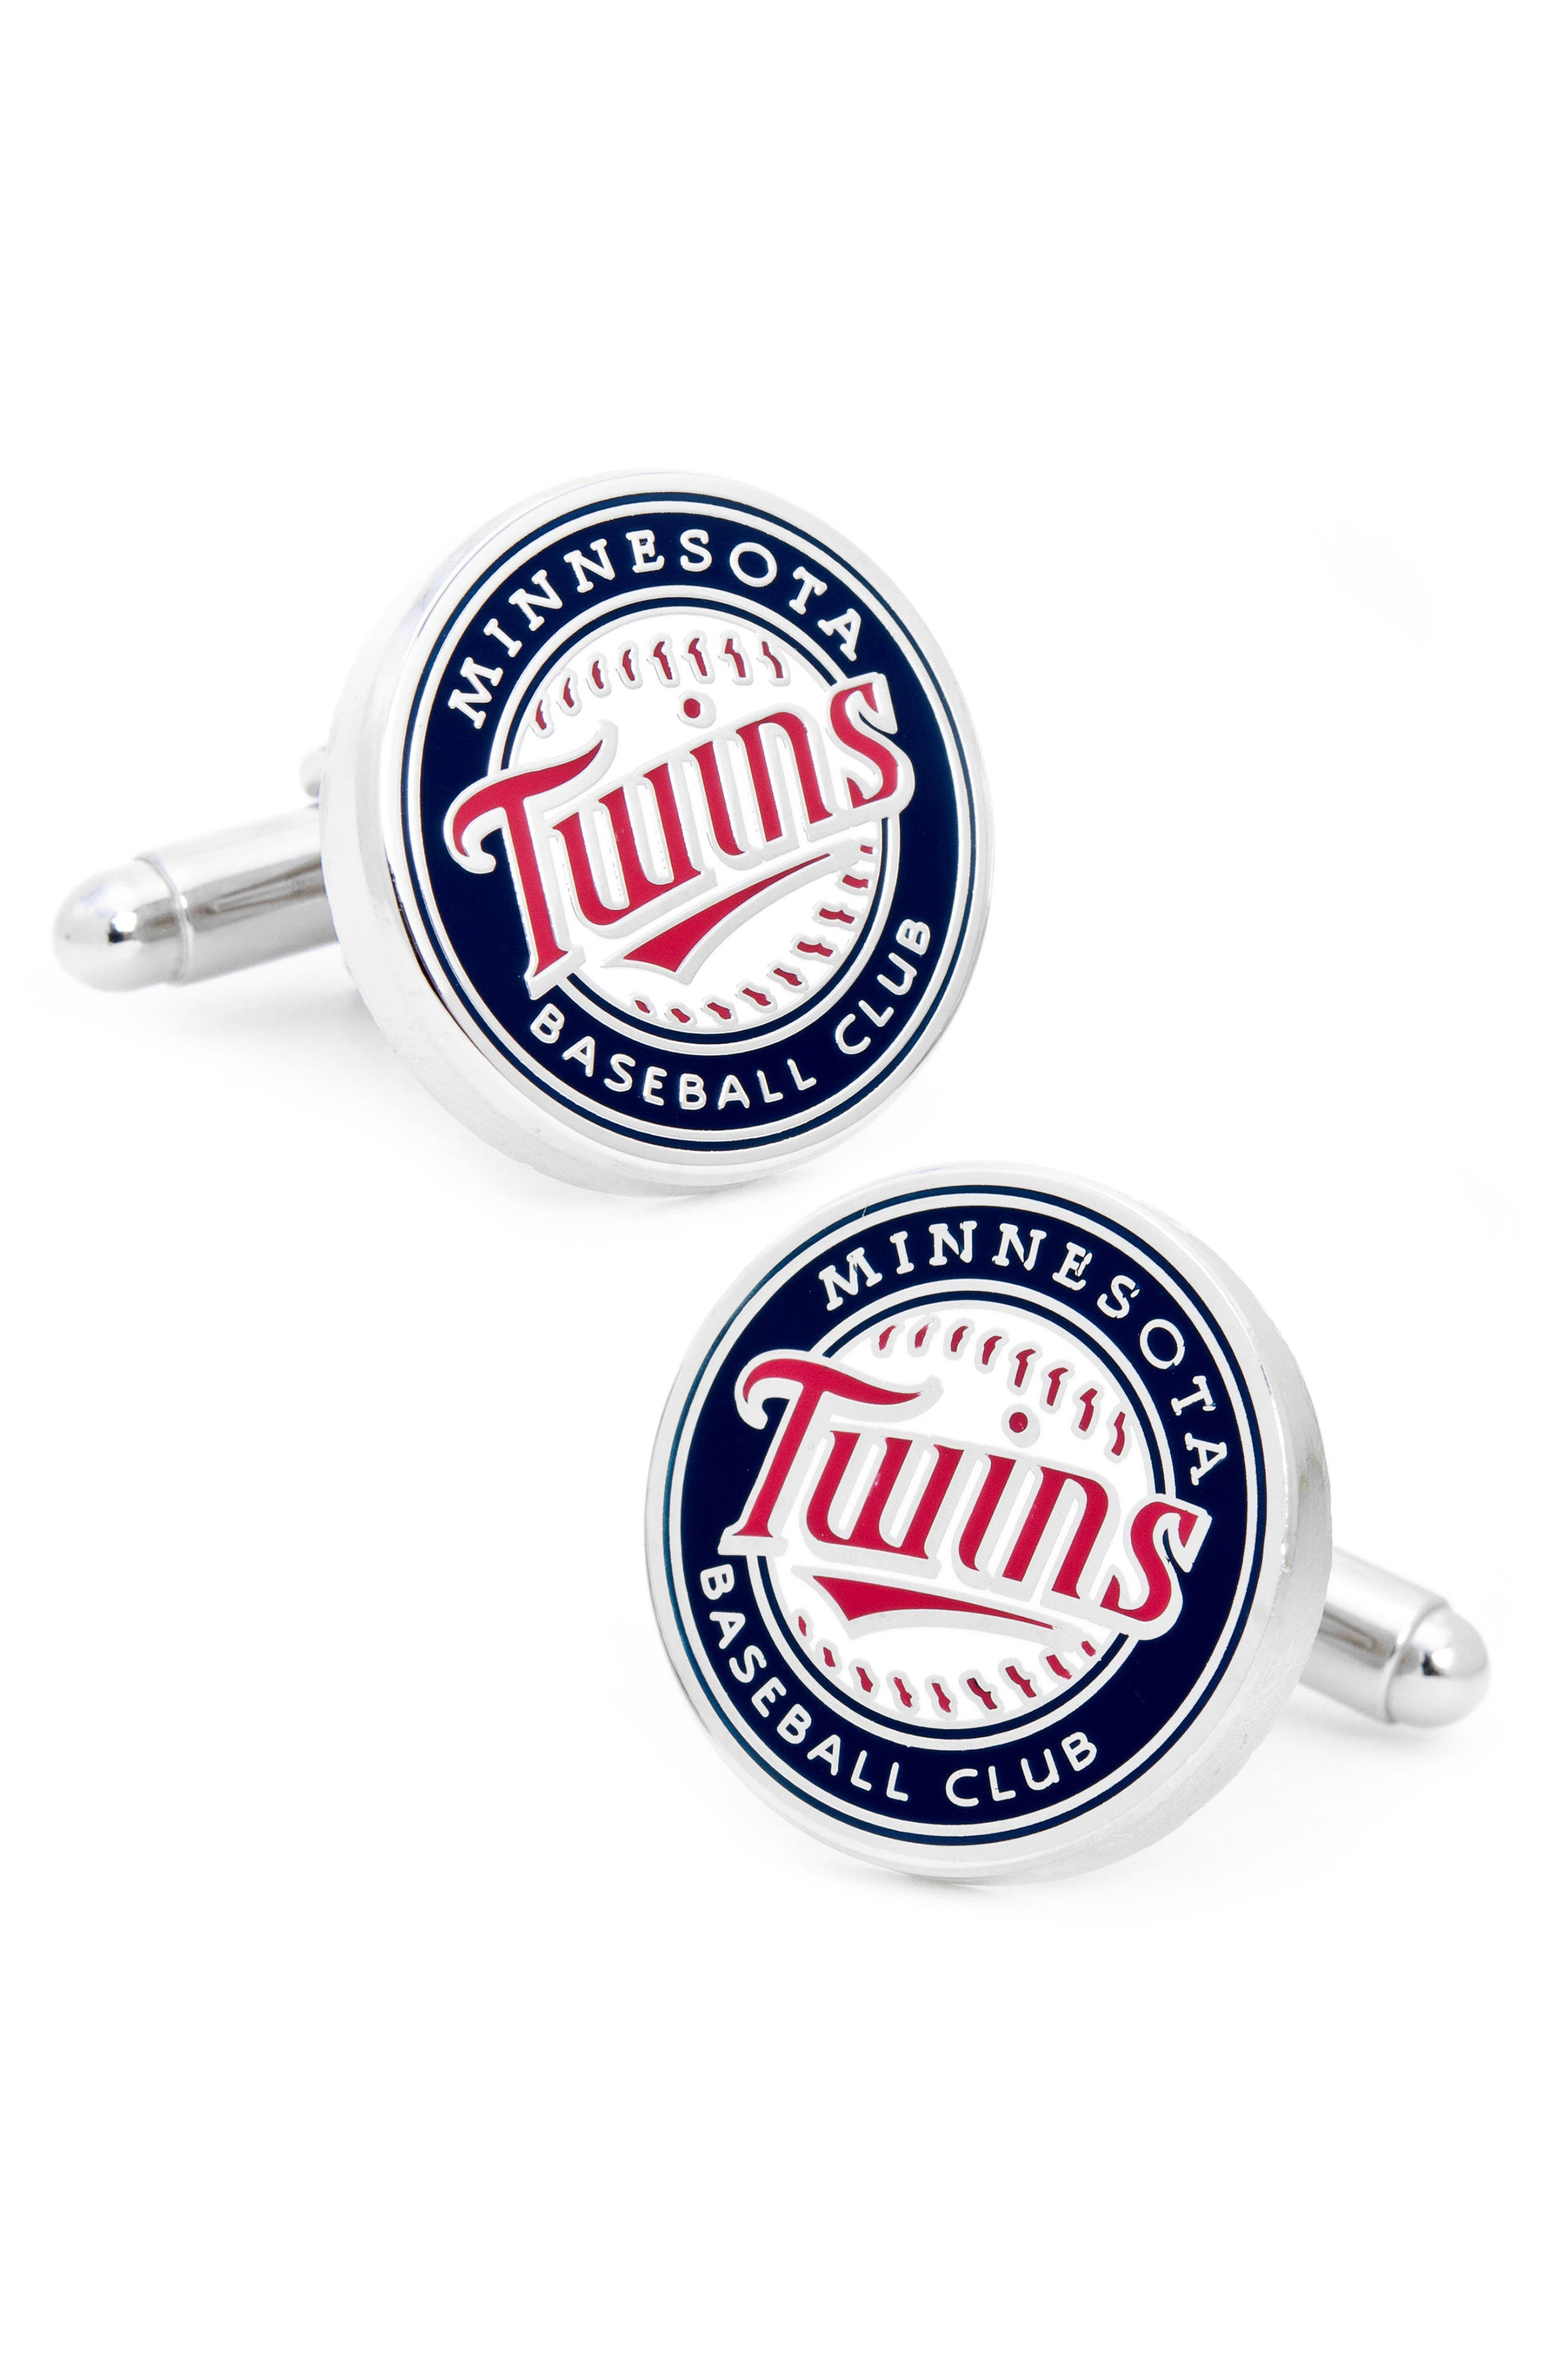 Minnesota Twins Cuff Links,                             Main thumbnail 1, color,                             Blue/ Red/ White